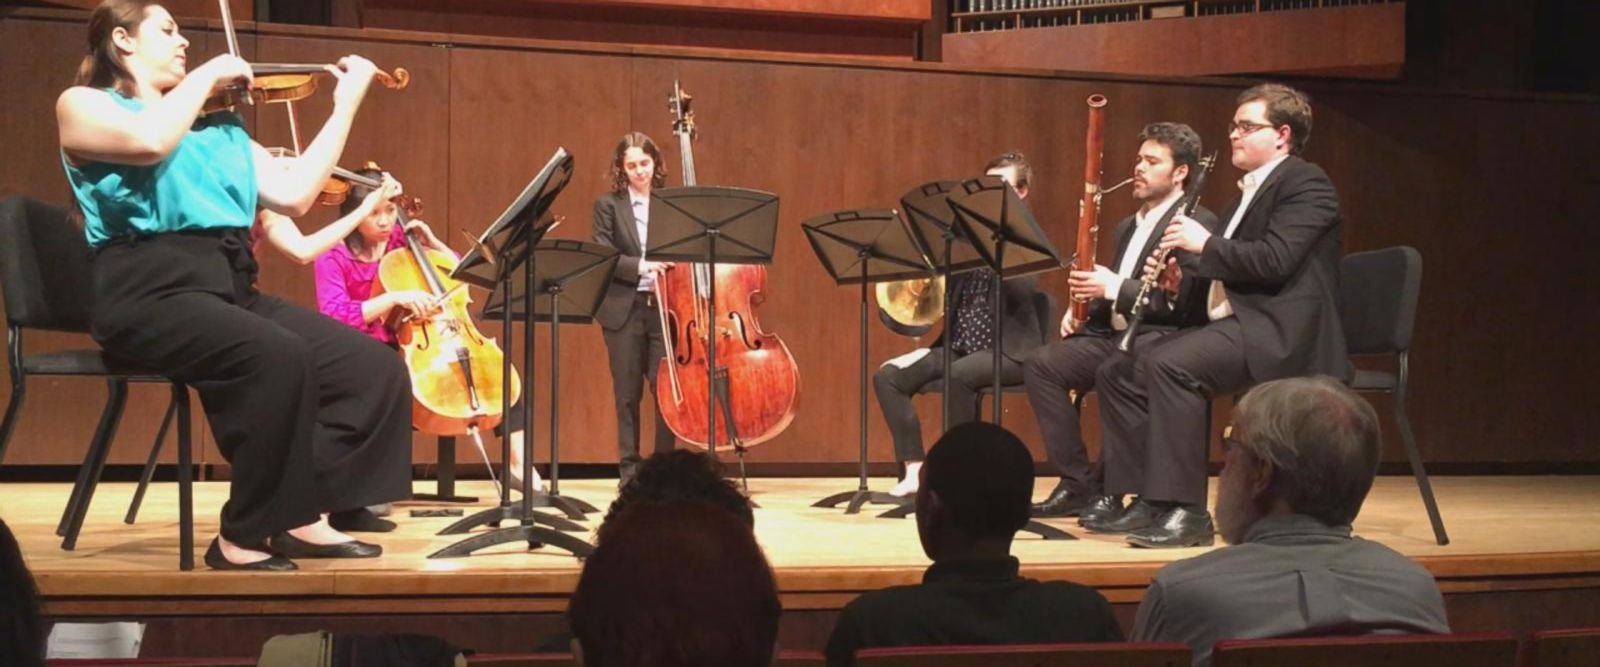 VIDEO: Carnegie Hall's Ensemble Connect performs at Paul Hall at The Juilliard School